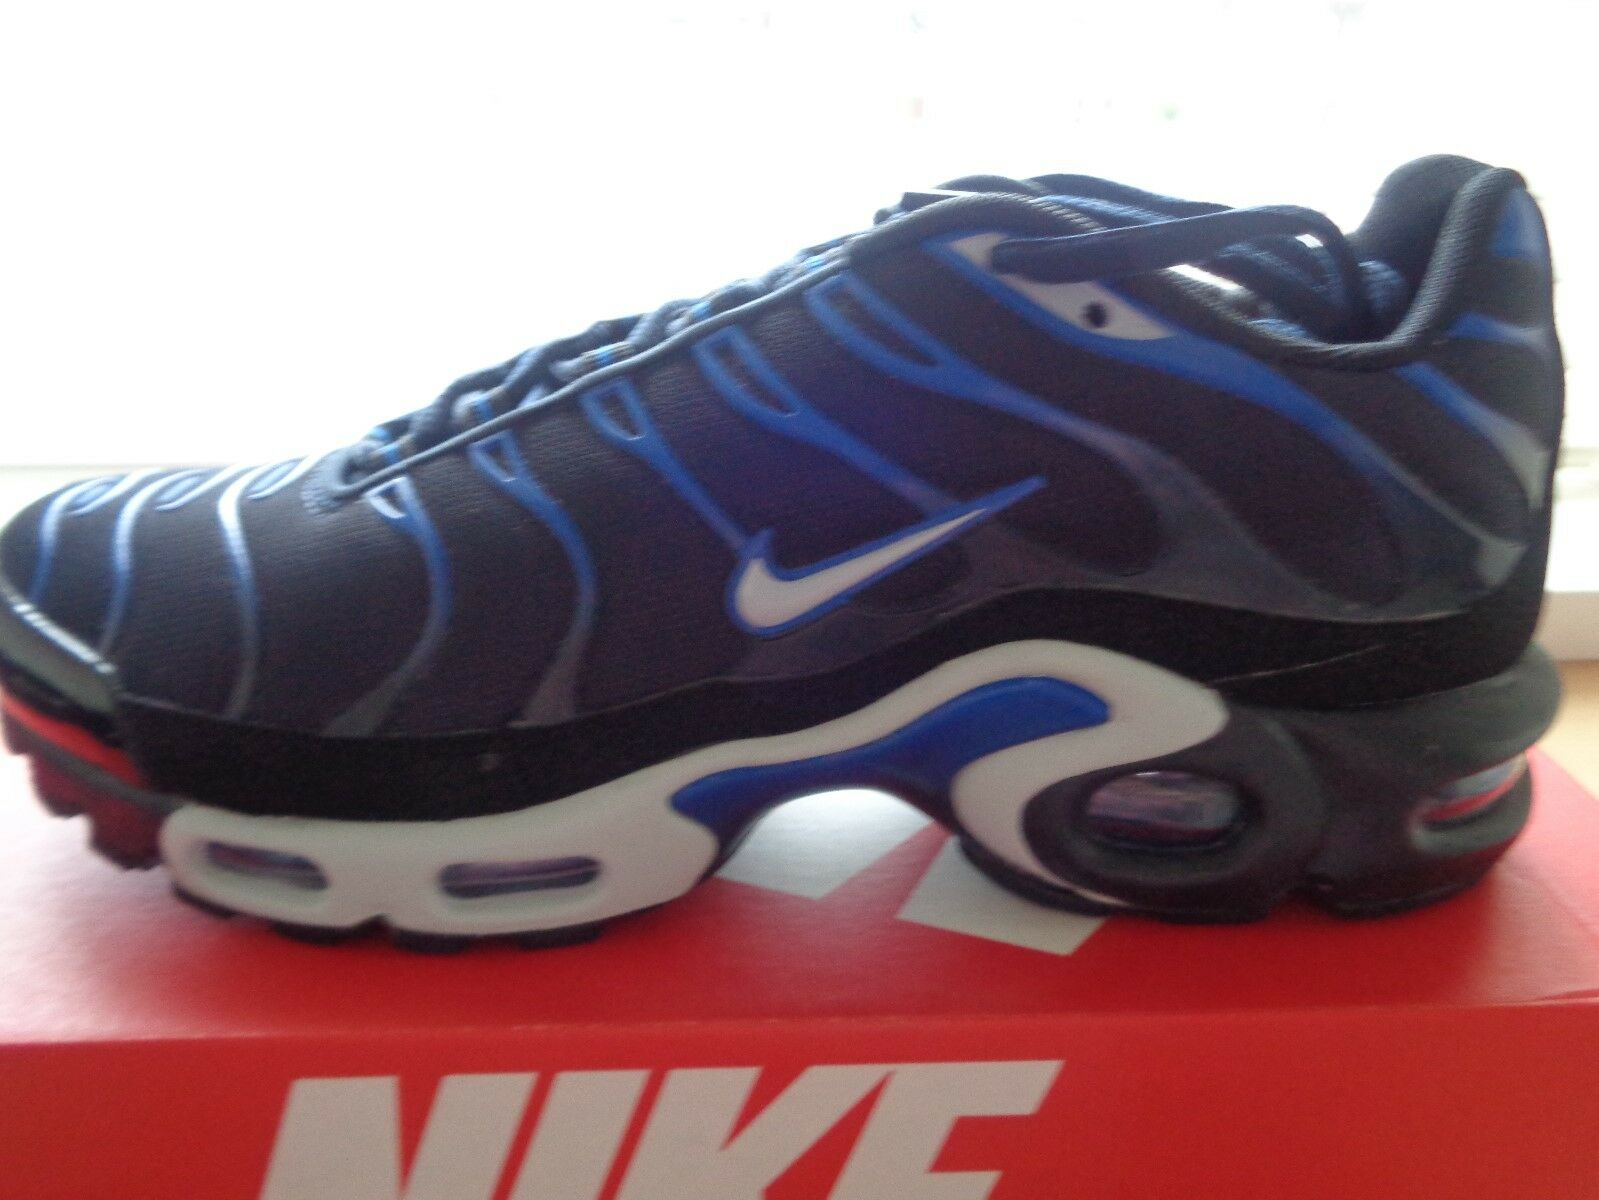 Nike Air max plus trainers sneakers 852630 401 eu 40.5 us 7.5 NEW+BOX